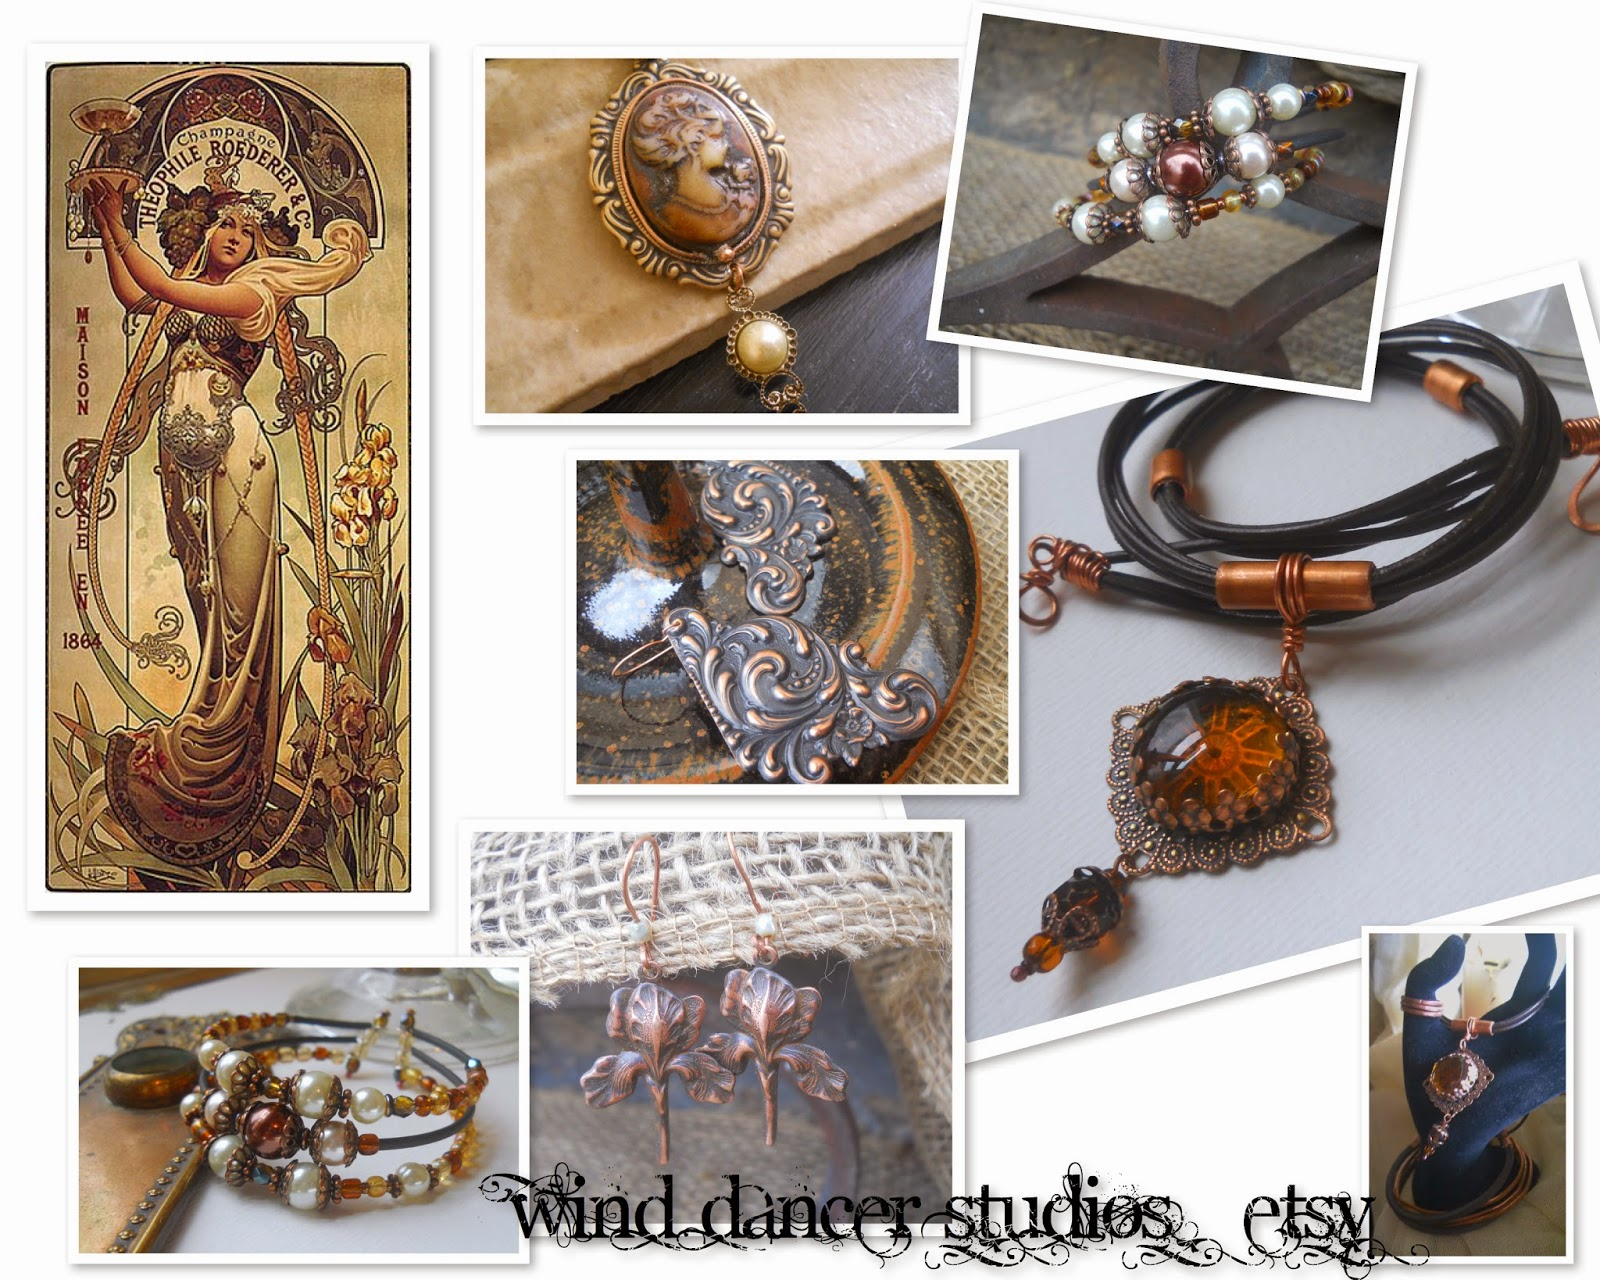 mucha's musings: Champagne collection in Brown, hand crafted jewelry by Wind Dancer Studios on Etsy